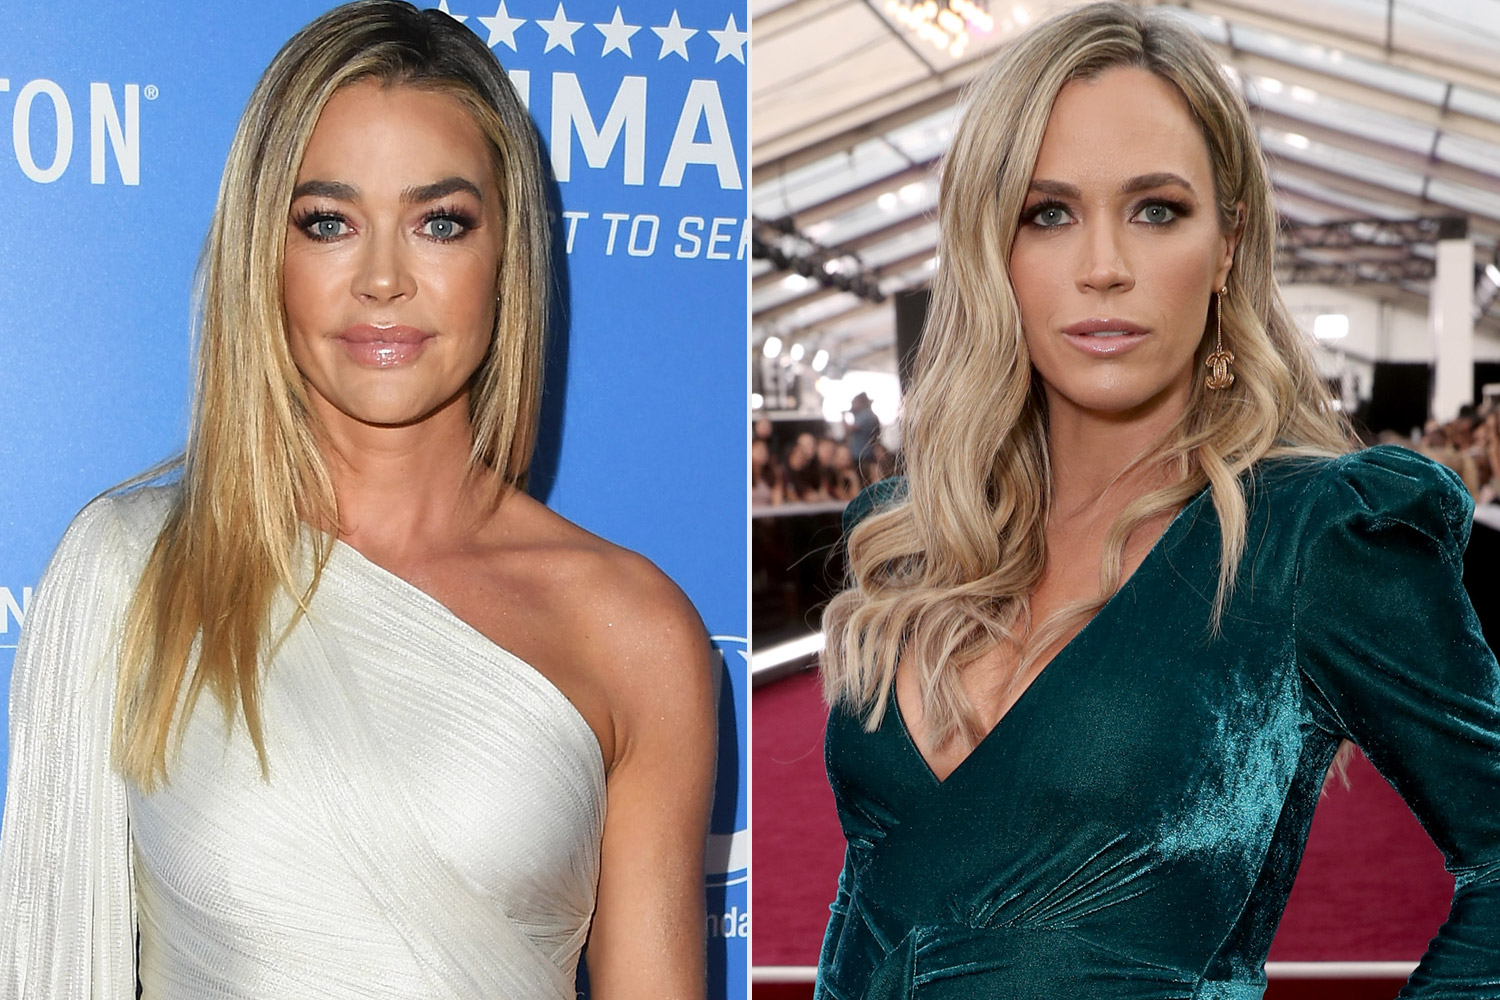 Denise Richards and Teddi Mellencamp